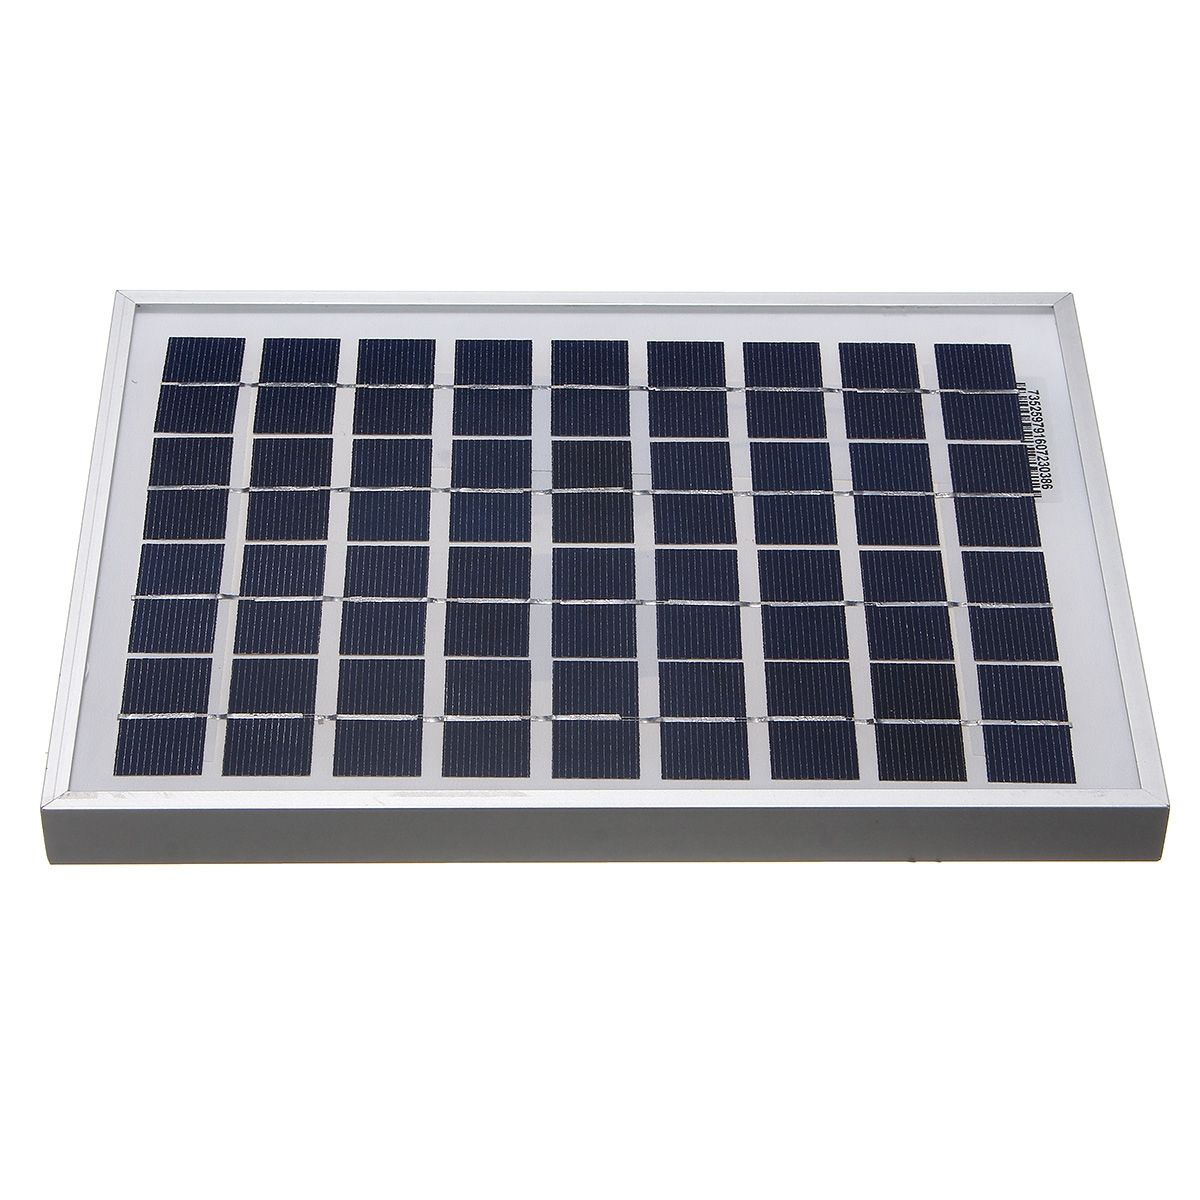 5w 18v Polycrystalline Solar Panel For 12v Battery Description The 5w Solar Panel Module Widely Applied To Solar Panel Cost Solar Solar Panels For Home